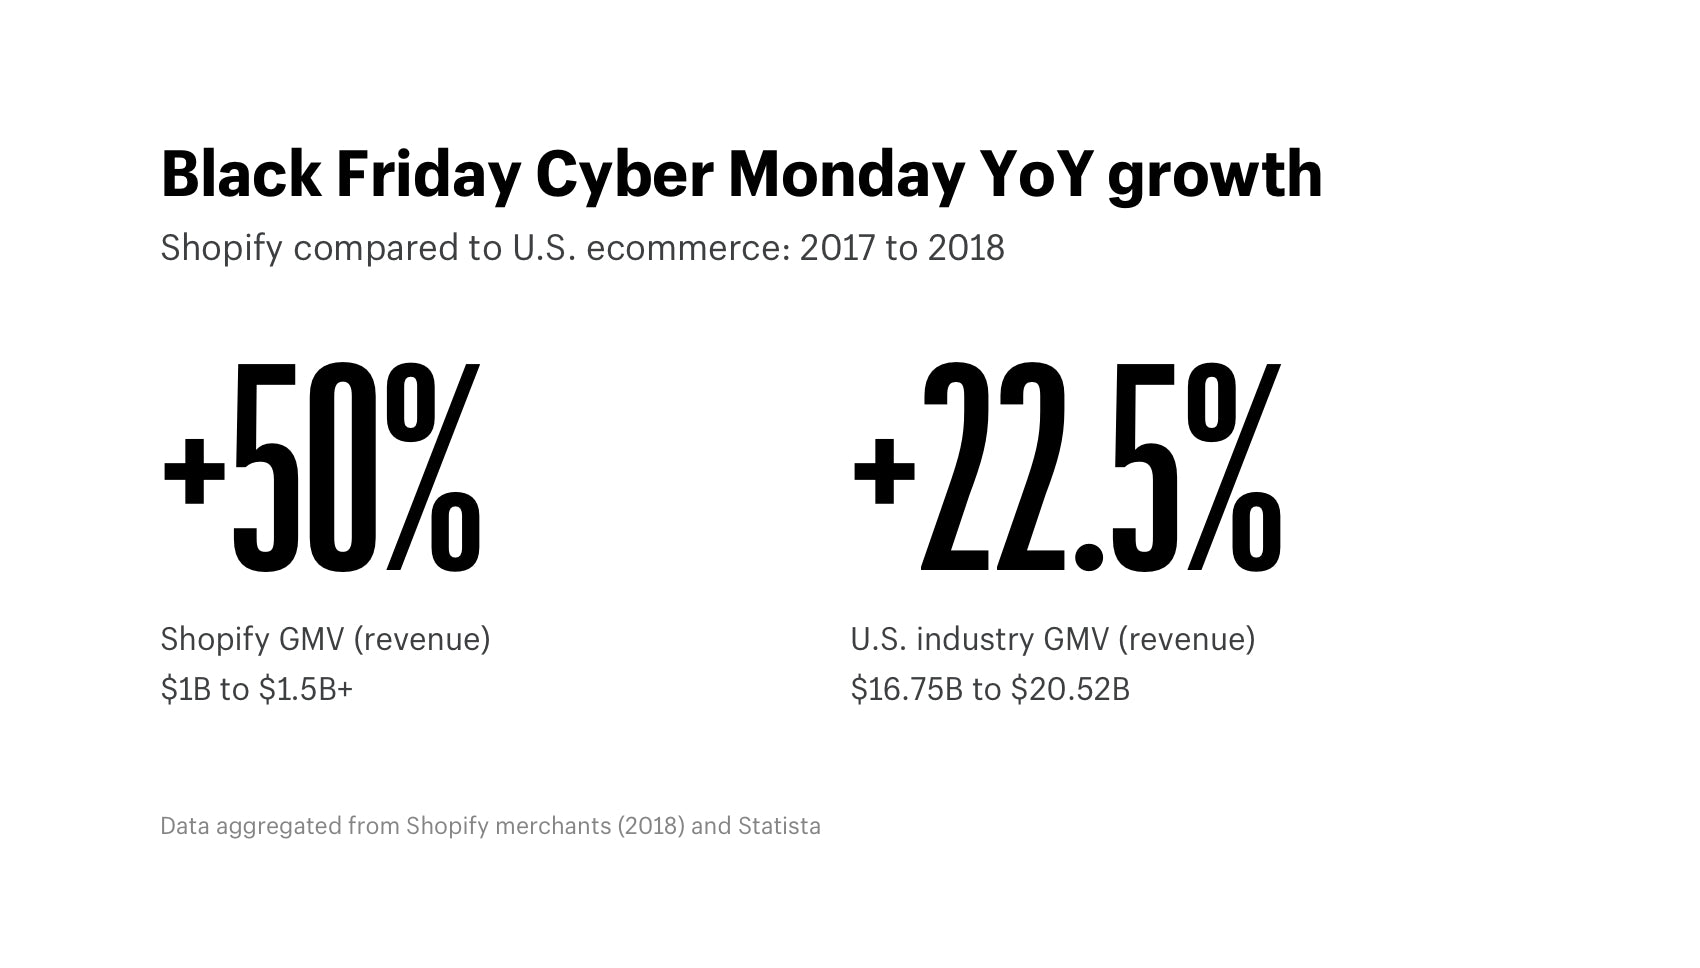 Black Friday Cyber Monday growth in 2018 vs 2017